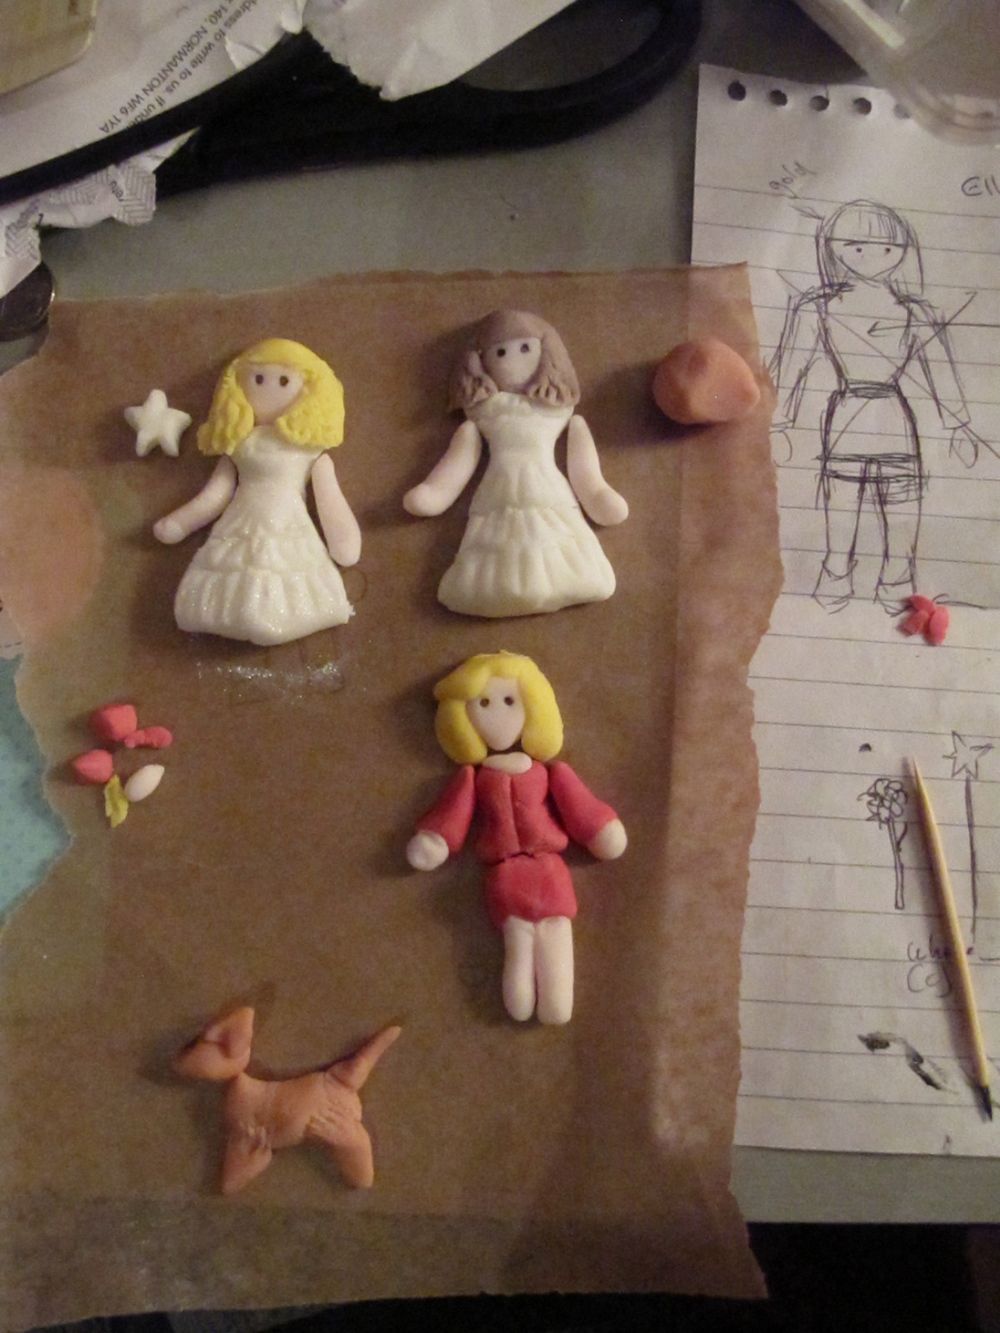 Musical characters made from icing - Elle Woods, and Glinda.